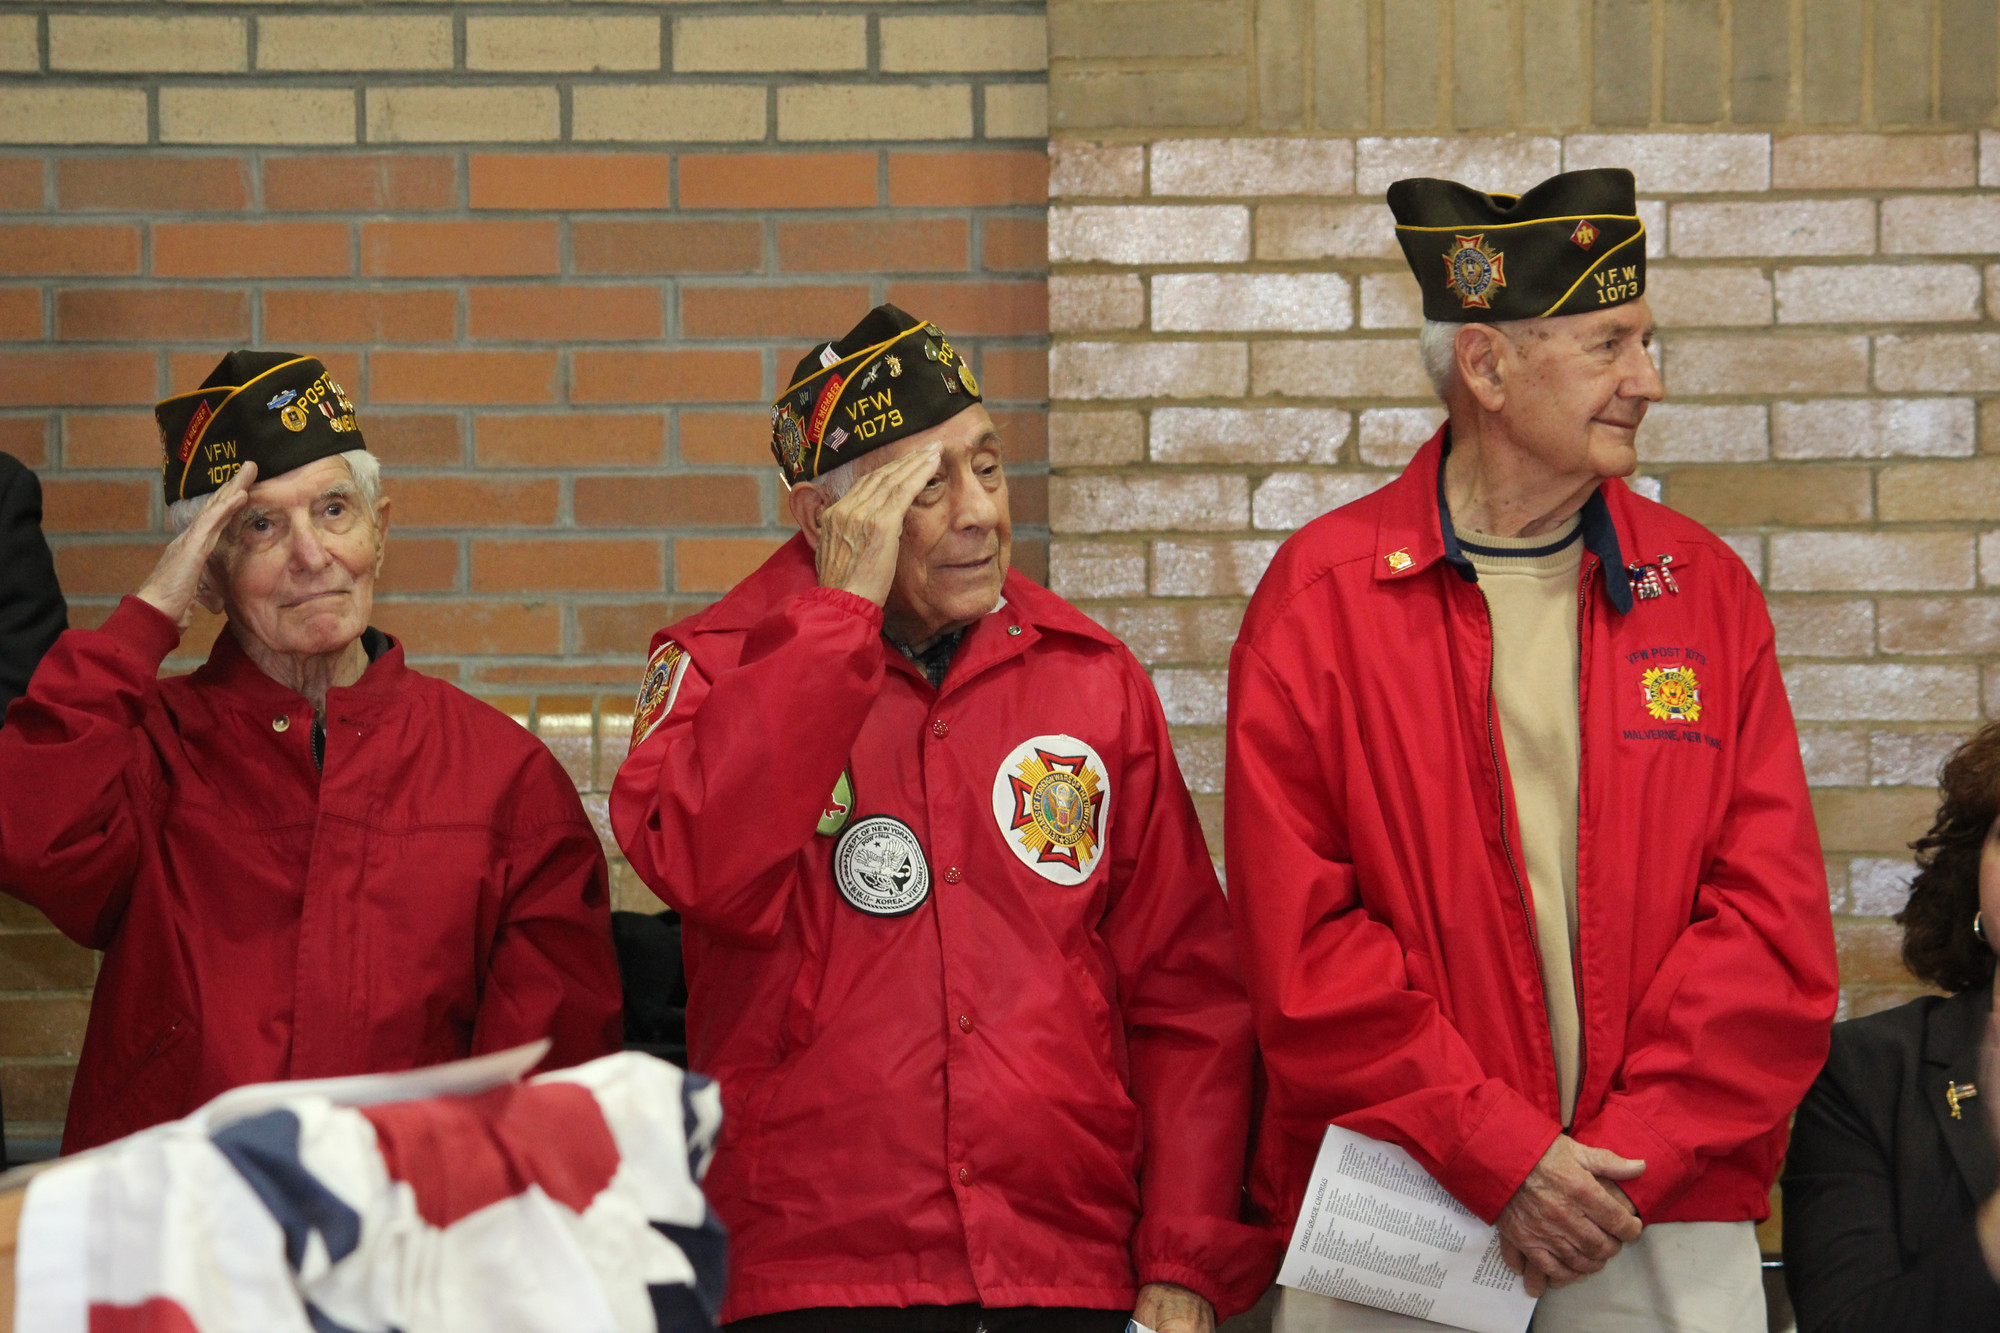 Proud members of the VFW Post 1073, left to right, Louis Jaccino, Vito Ilardi, and Steve Kirtyan saluted their brethren.